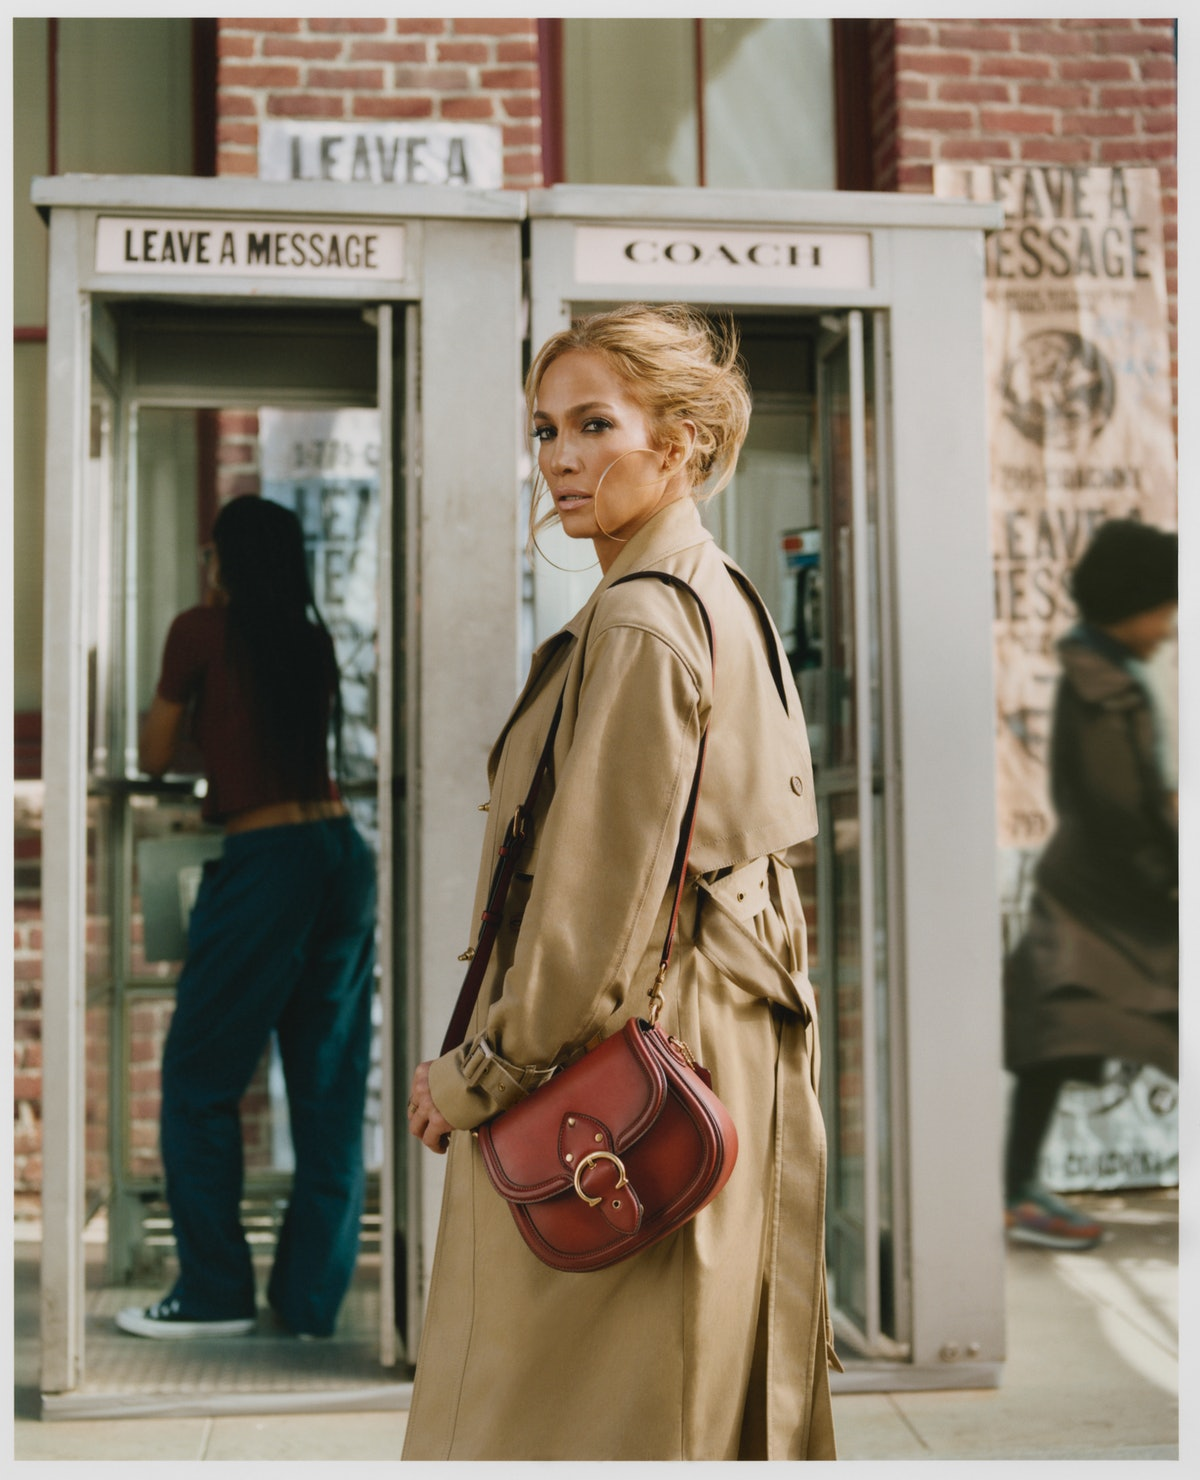 Jennifer Lopez in Coach's Spring/Summer 2021 Campaign.